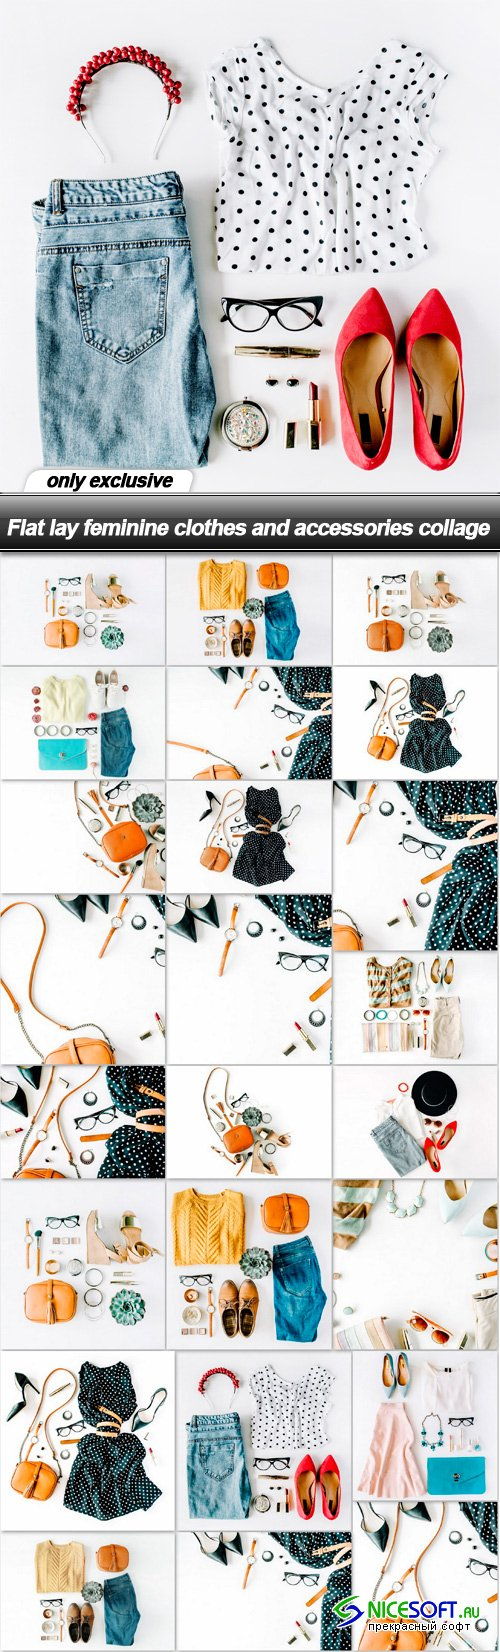 Flat lay feminine clothes and accessories collage